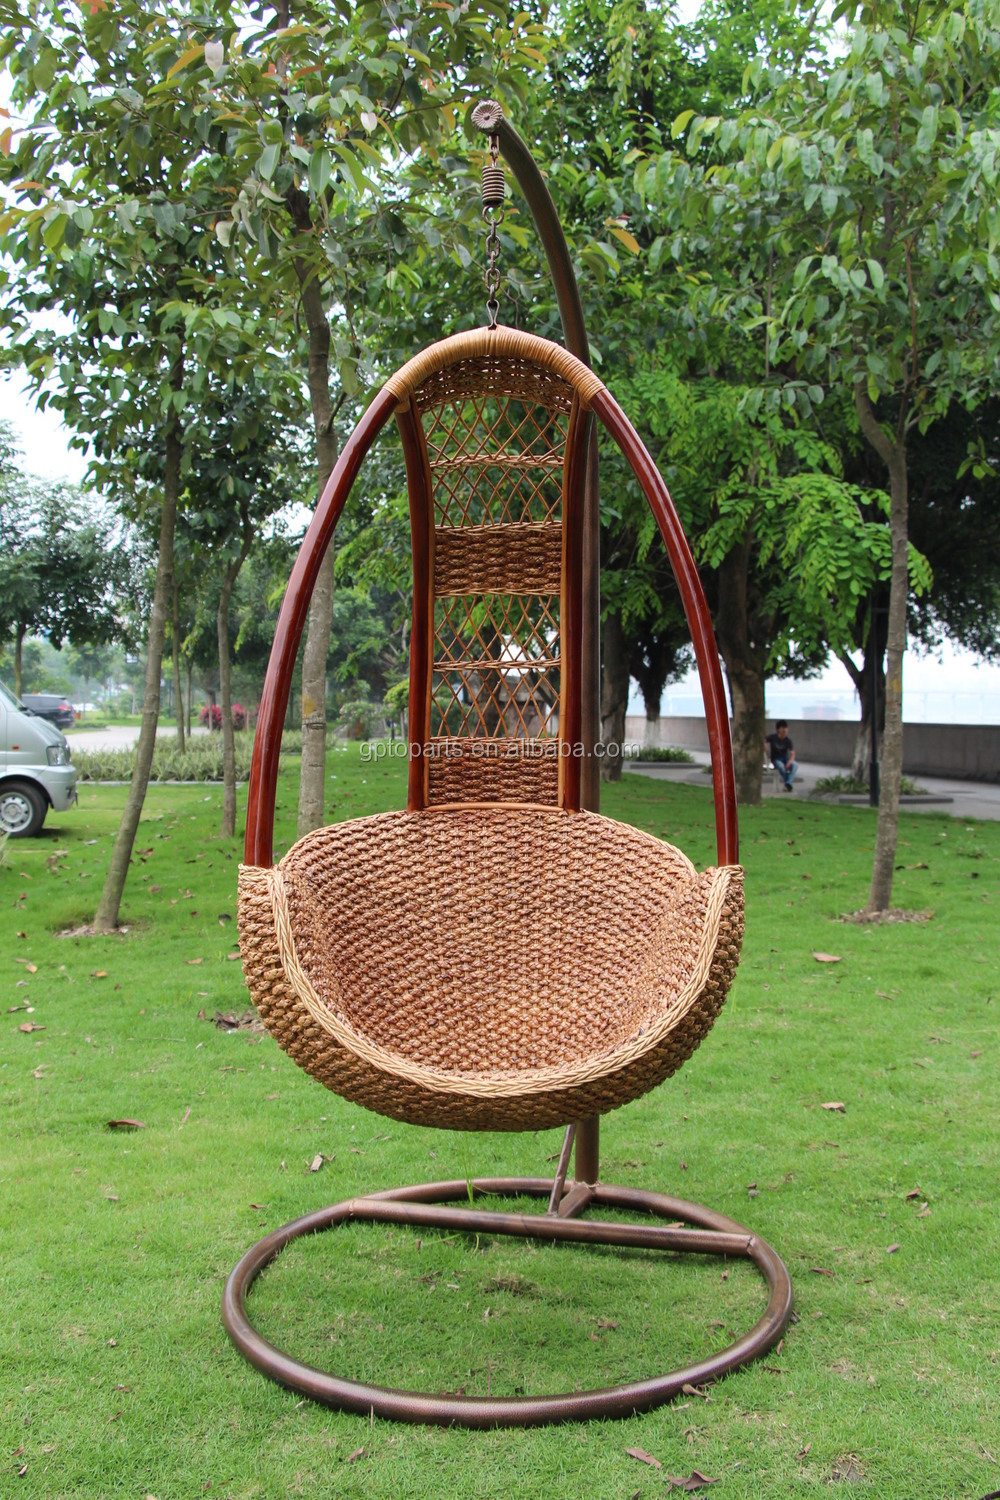 Hanging Rattan Swing Chair Mid Century Wickereggbamboo